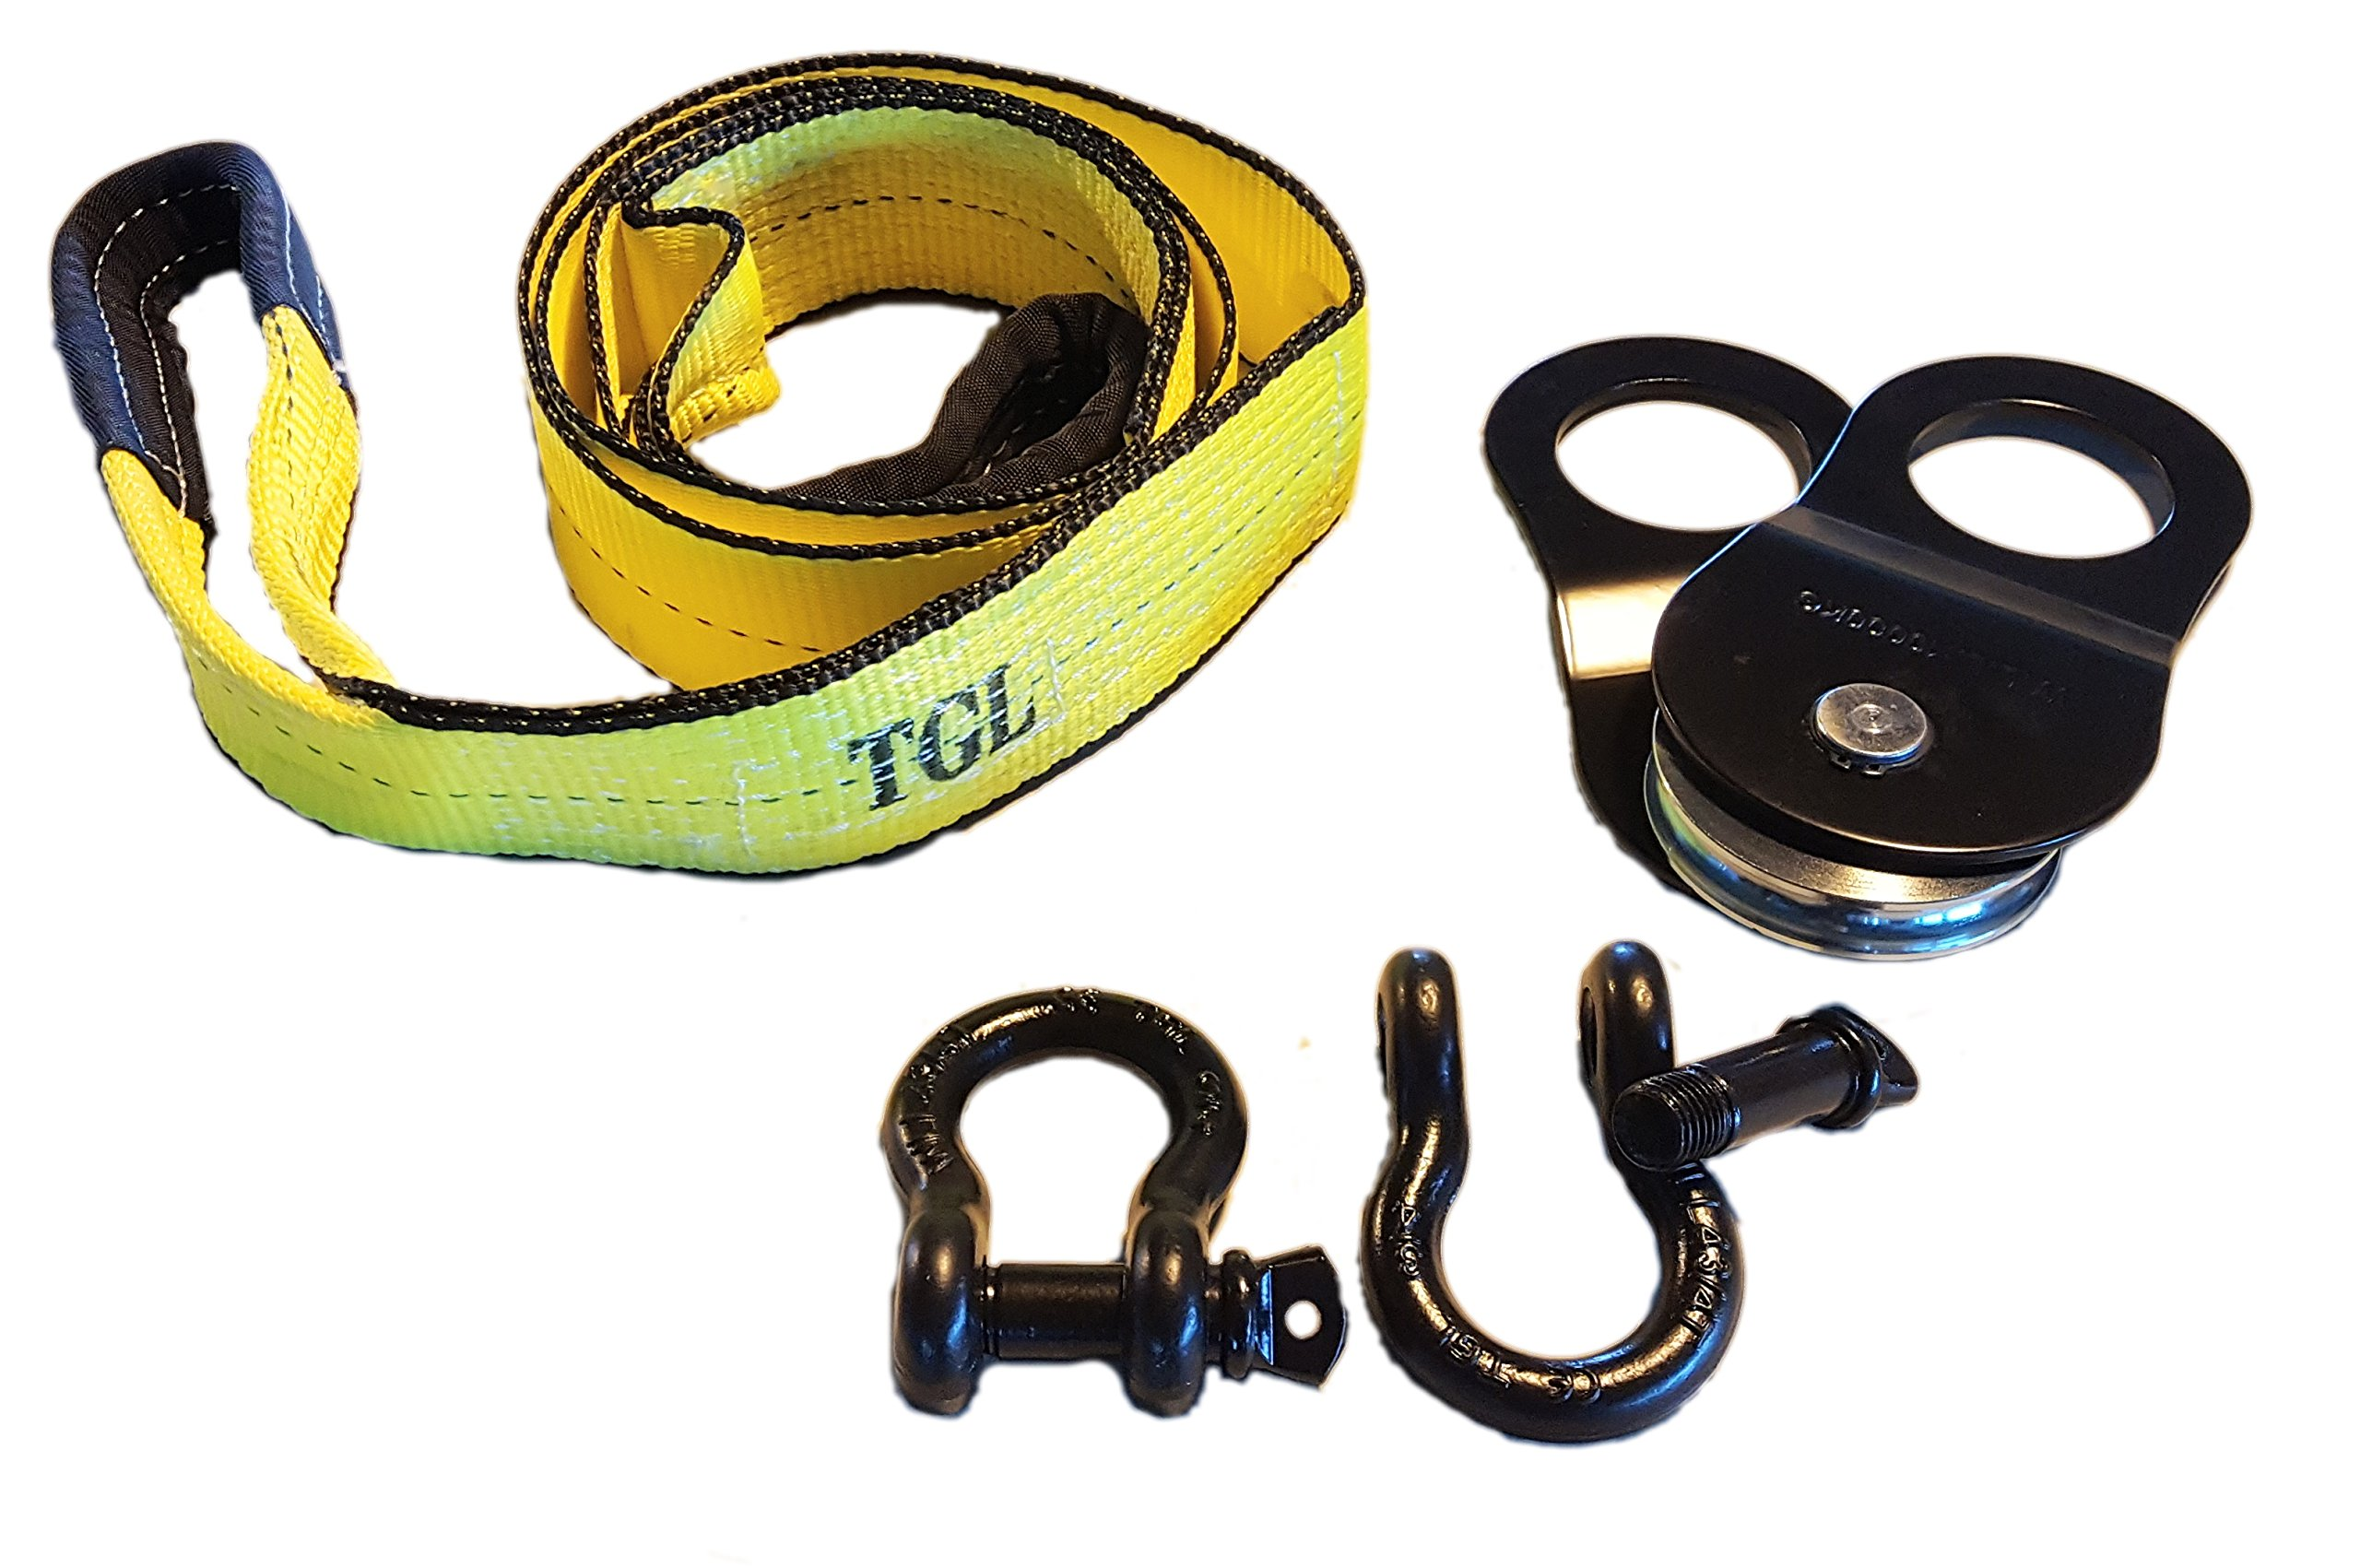 TGL 3 inch, 8 Foot Tree Saver, Tow Strap with 2-Pack D Ring Shackles and 10 Ton Snatch Block by TGL